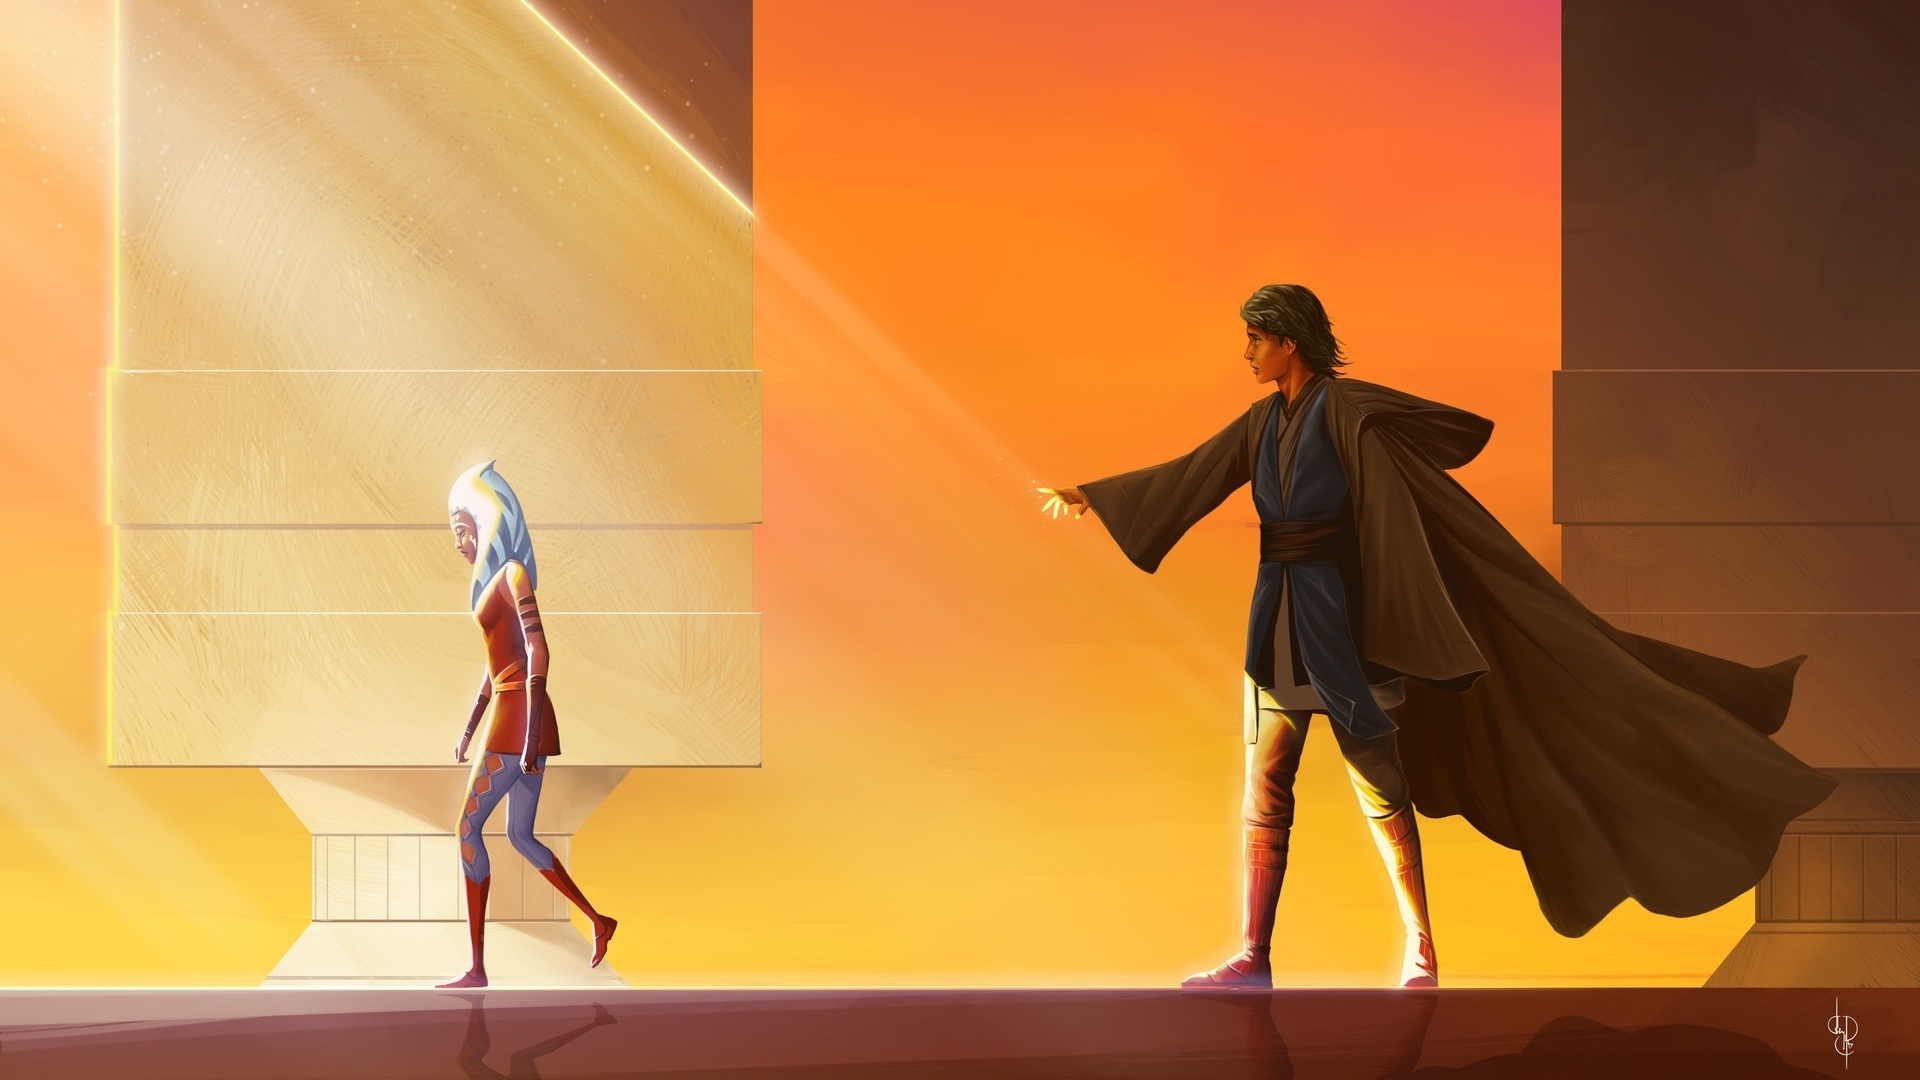 1920x1080 Ahsoka Tano And Anakin Skywalker Art 1080p Laptop Full Hd Wallpaper Hd Artist 4k Wallpapers Images Photos And Background